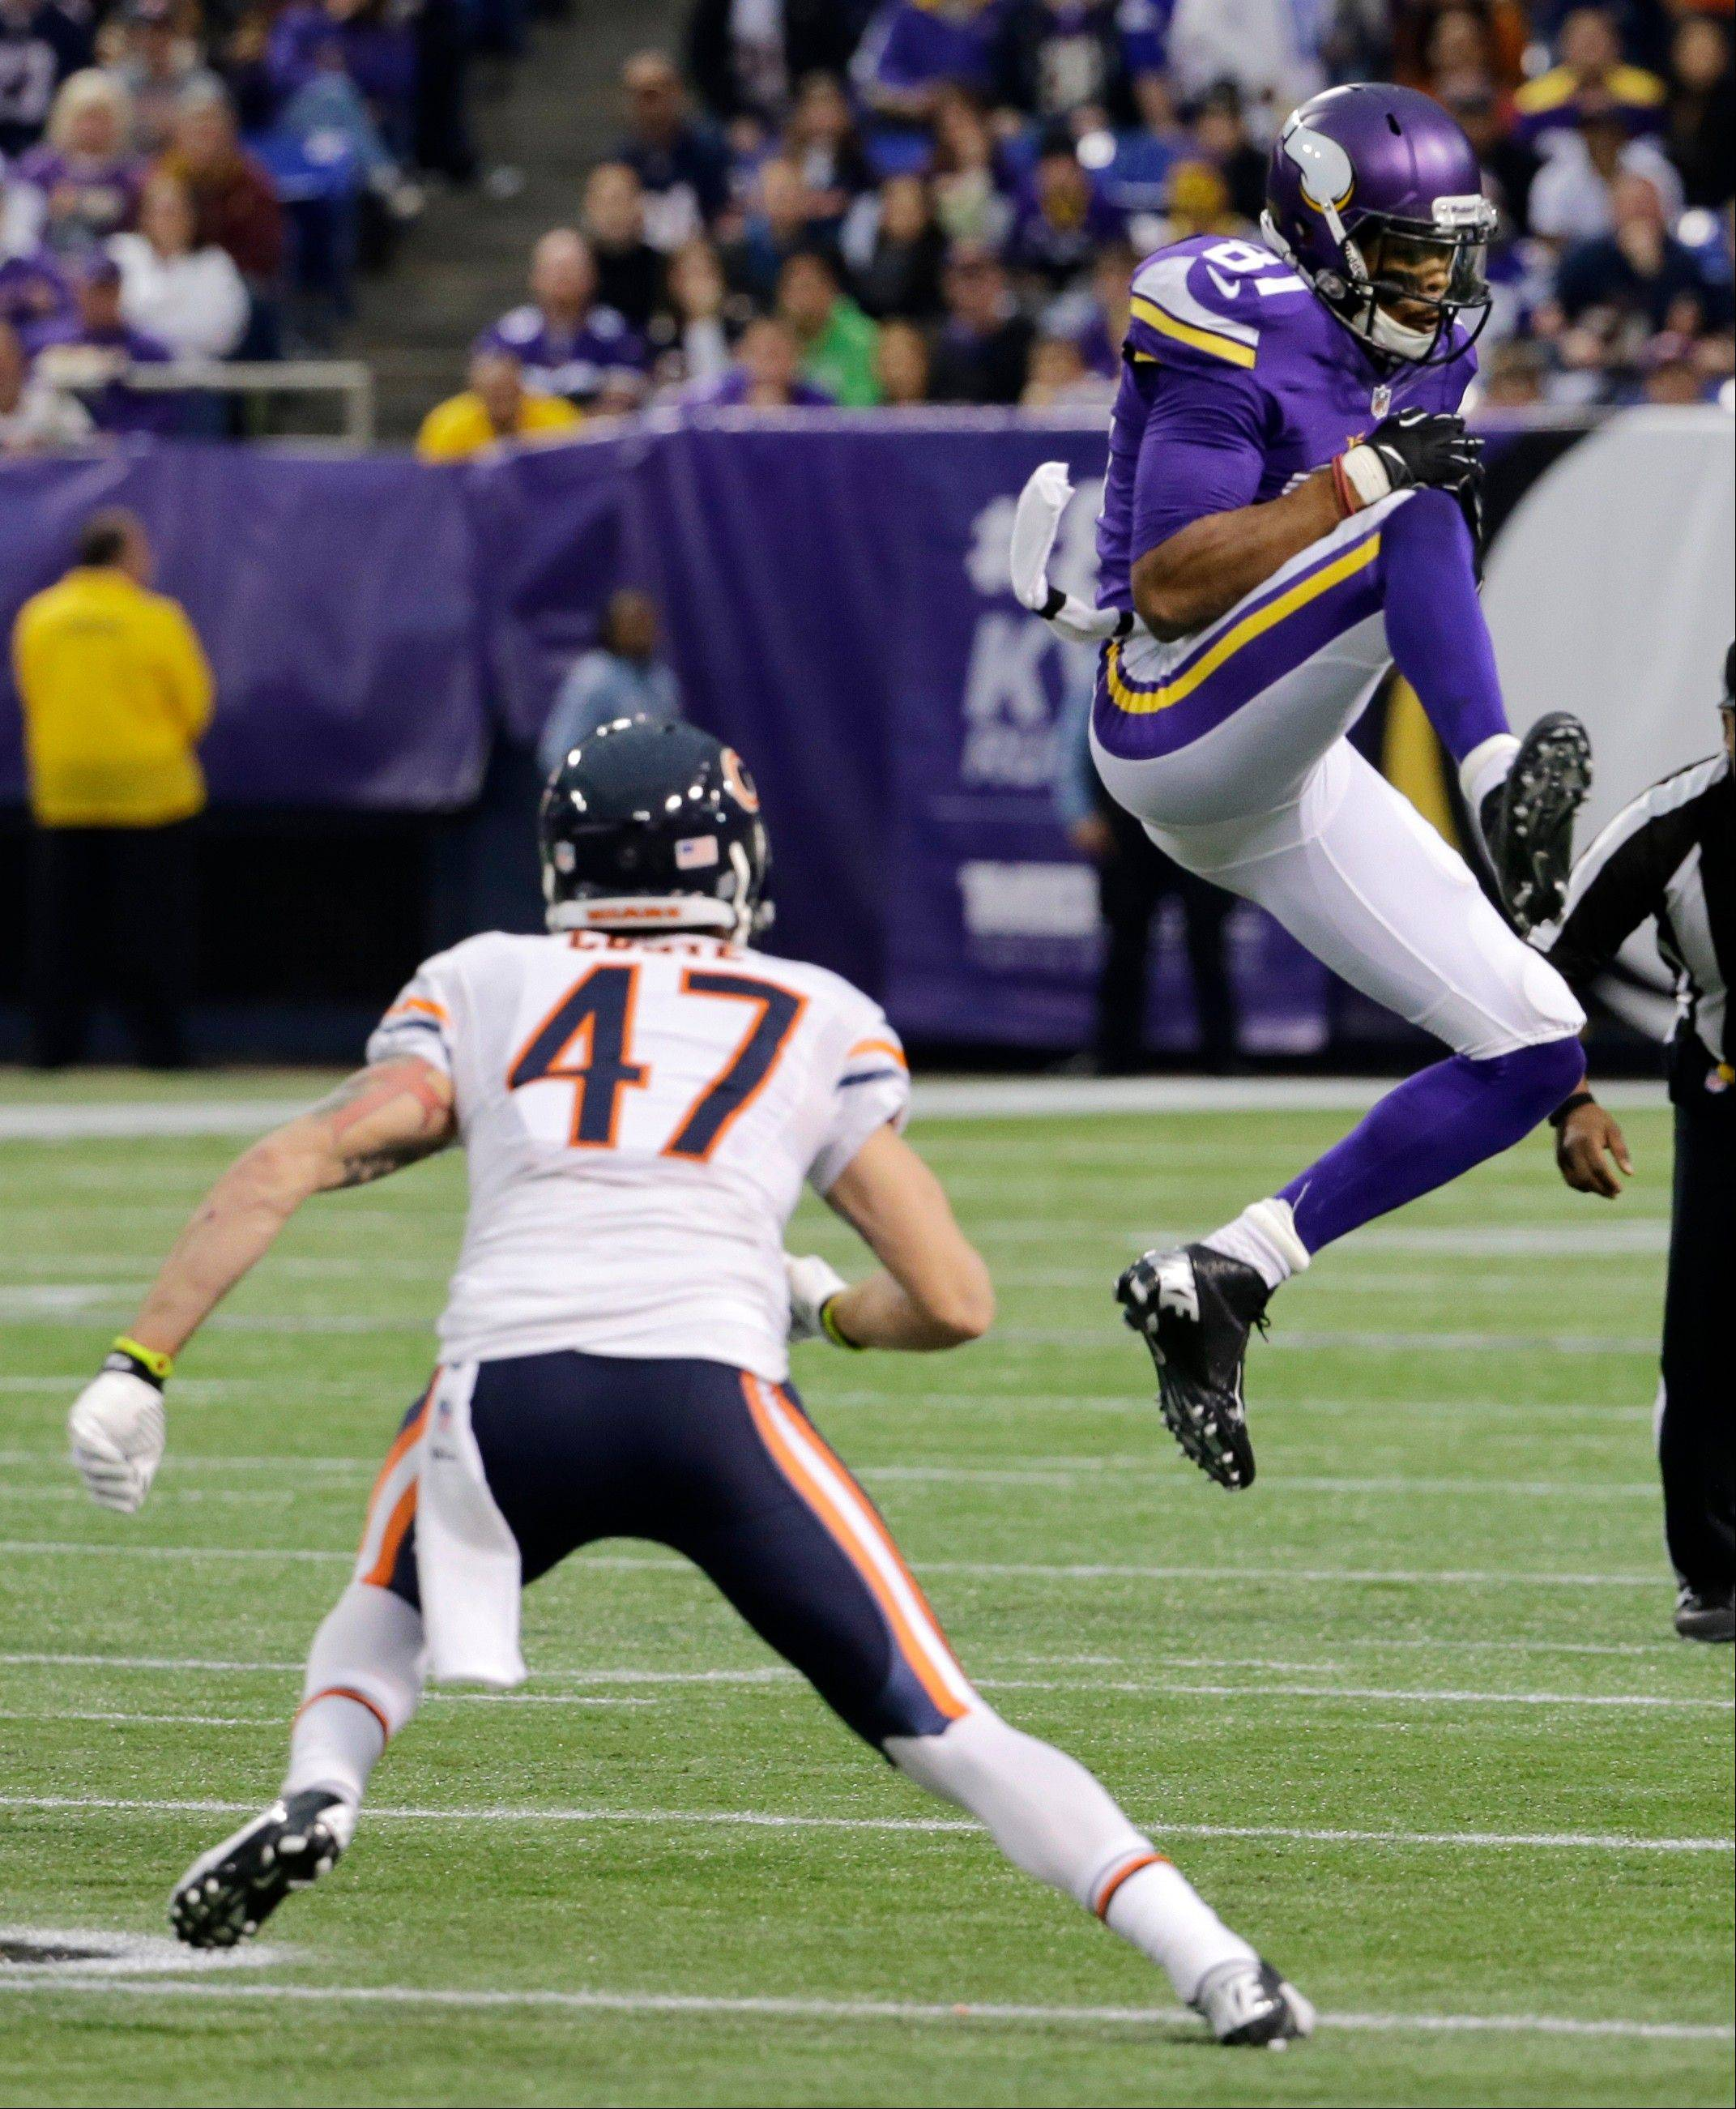 Minnesota Vikings wide receiver Jerome Simpson, right, catches a pass over Chicago Bears free safety Chris Conte during the second half.